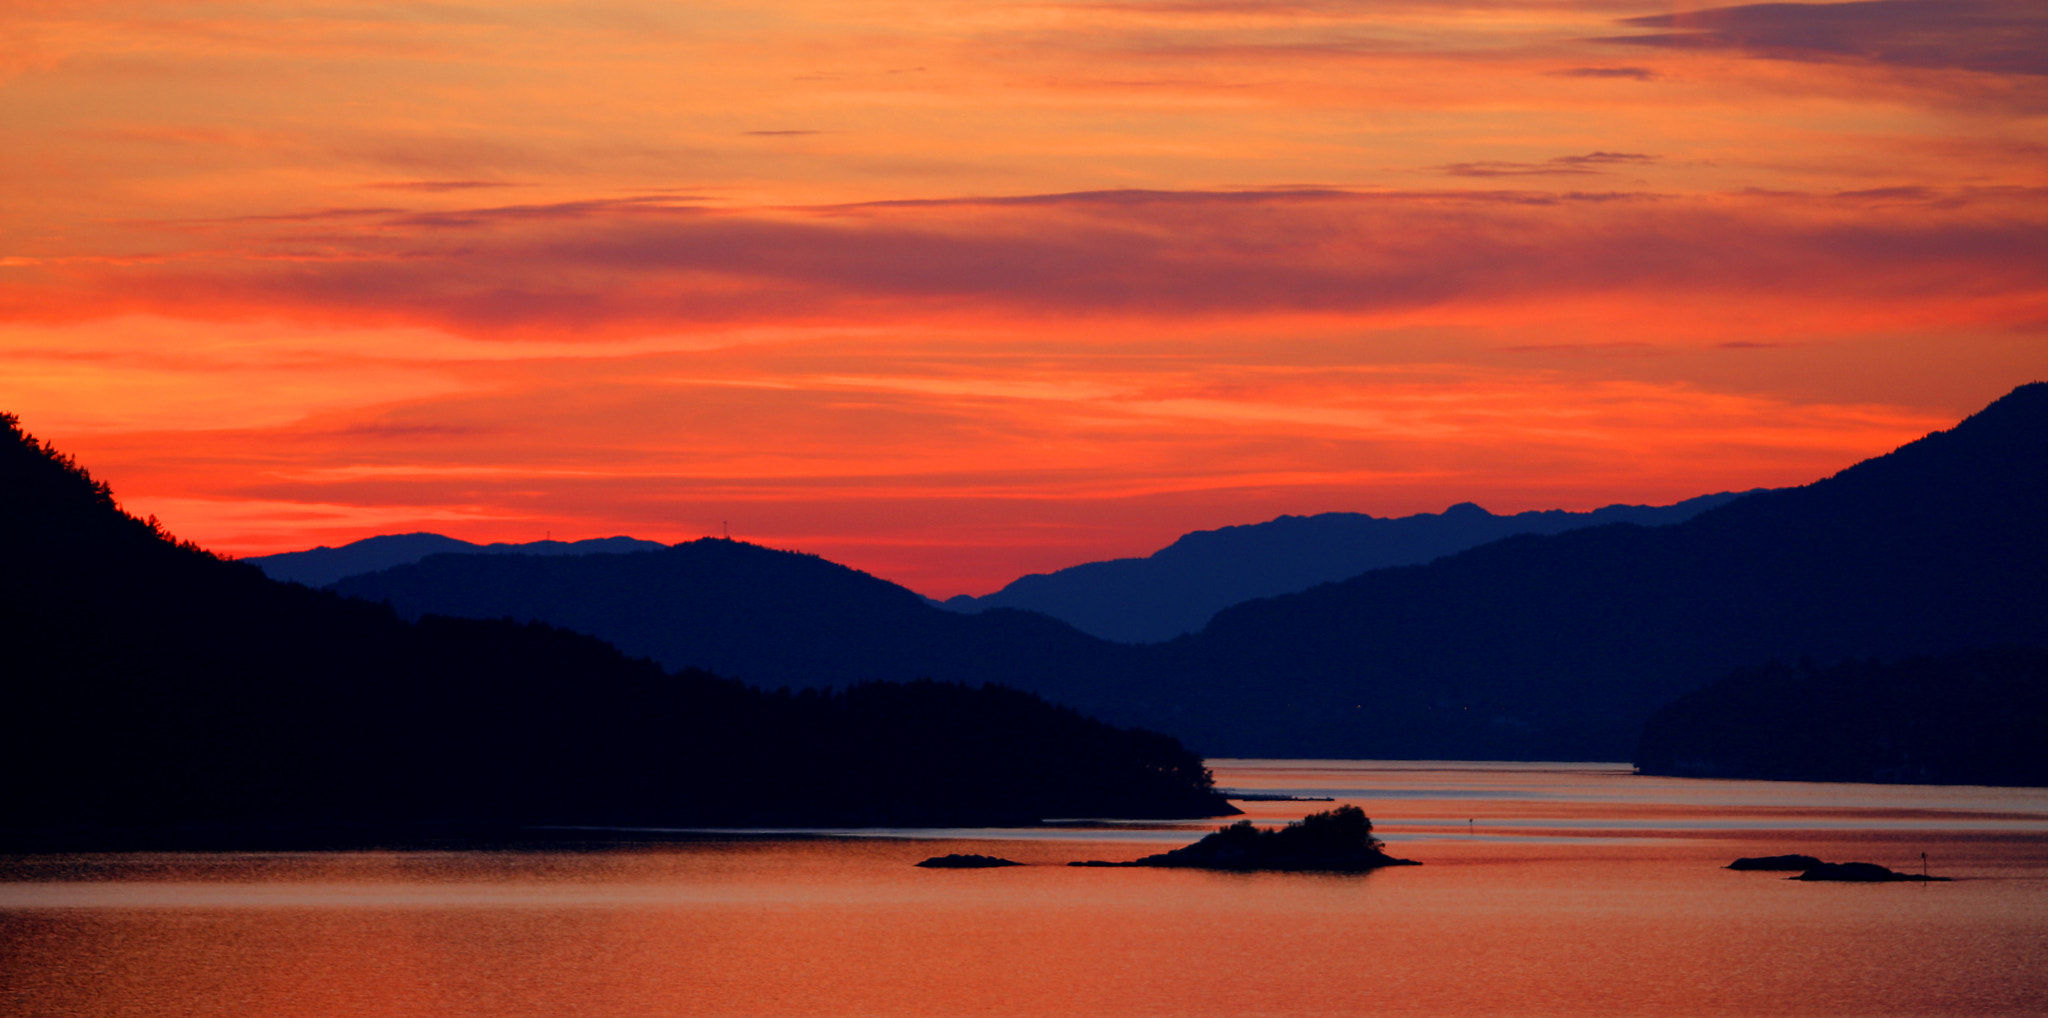 Photograph Sunset by Roy Danielsen on 500px